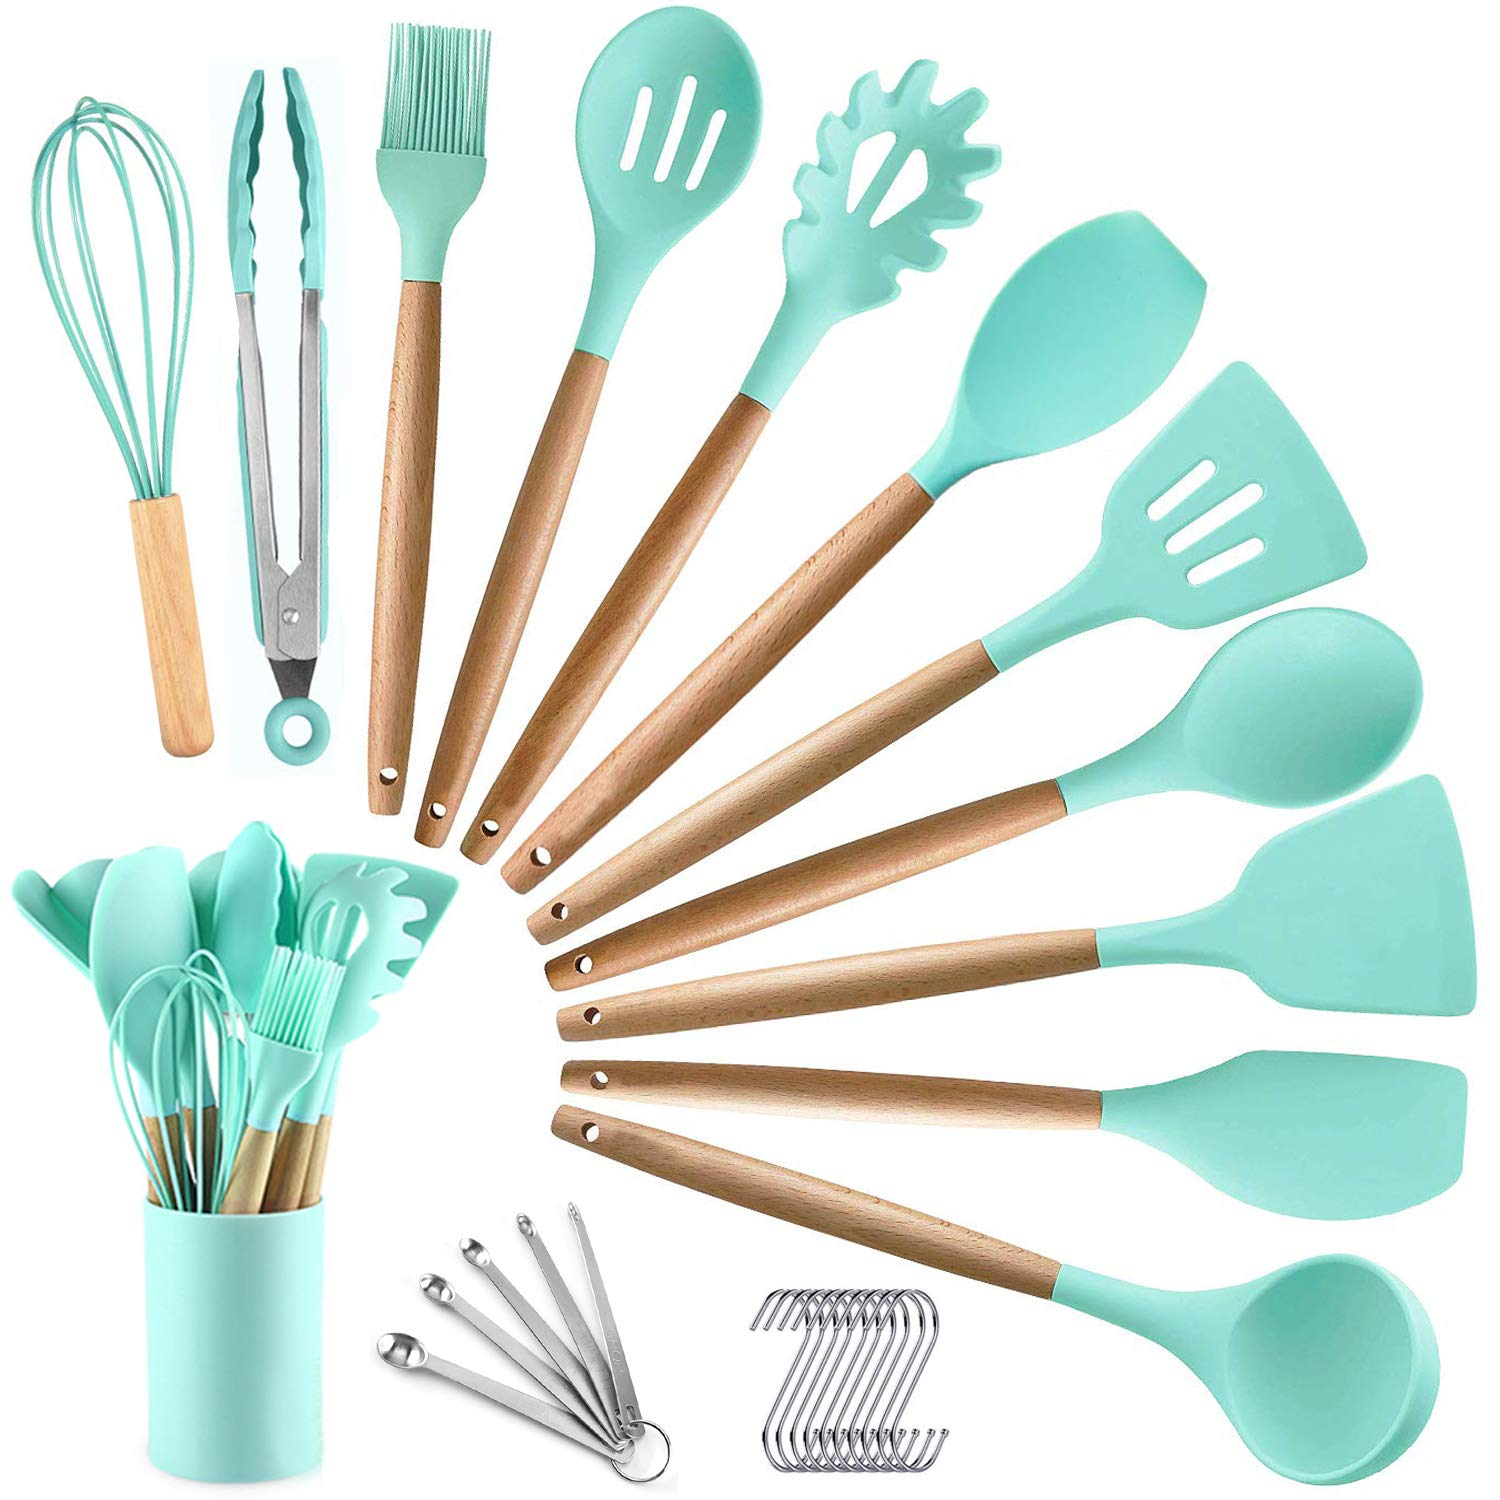 Love this new Kitchen Utensil Set!